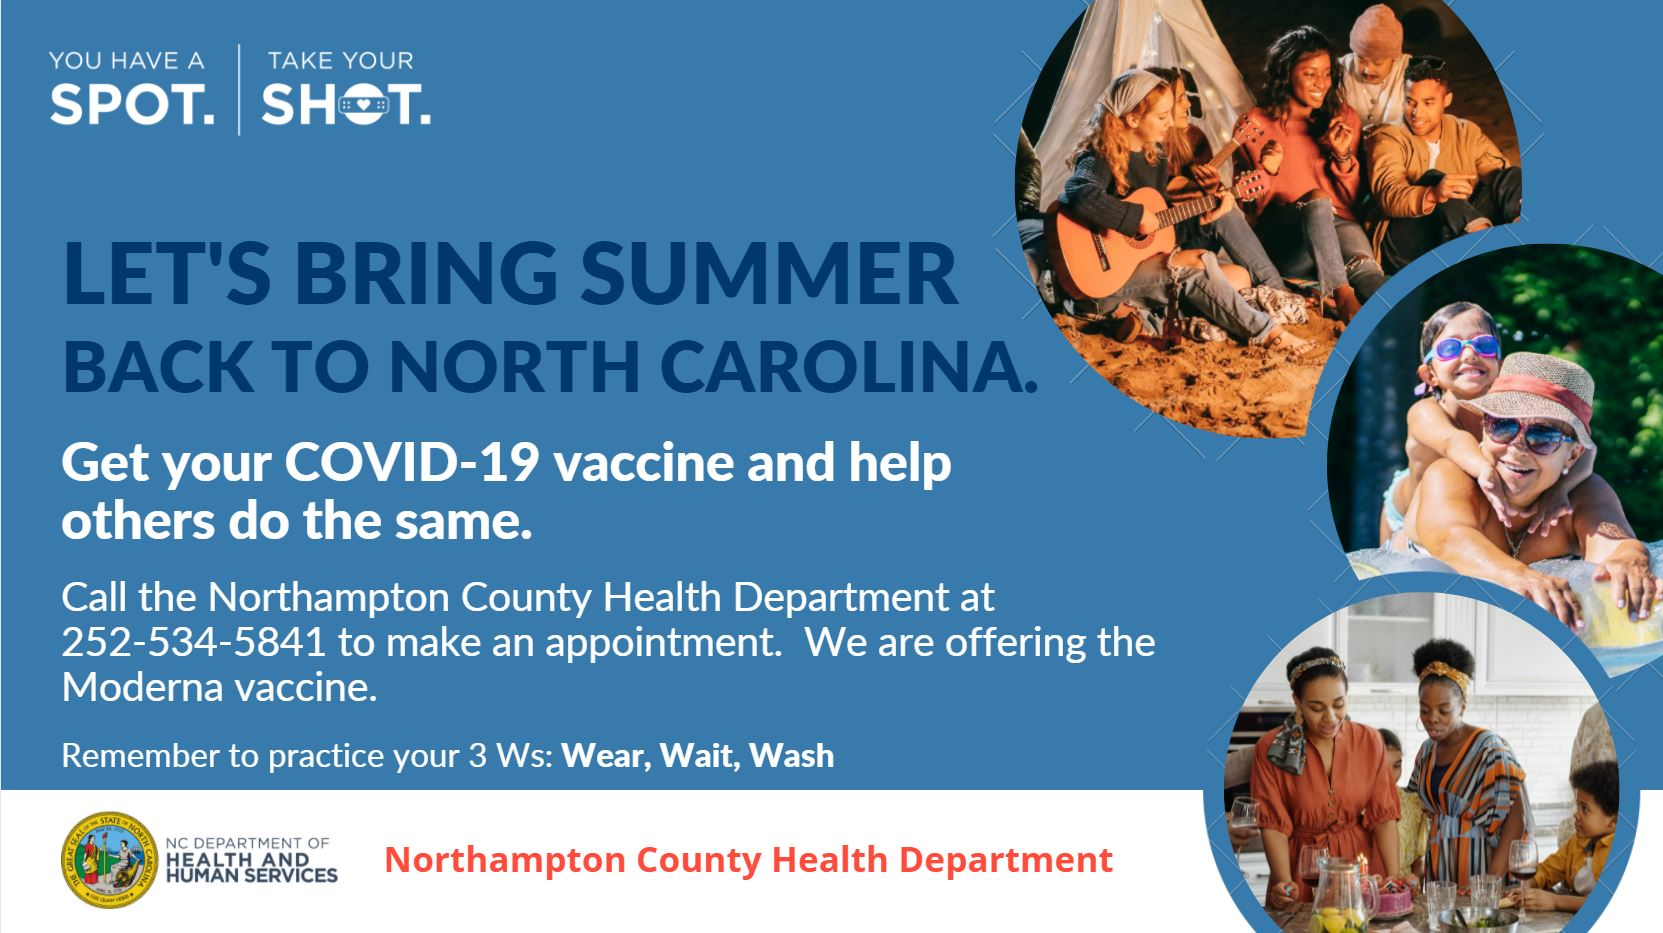 You have a spot, take your shot. Get your Covid-19 vaccine at NCHD.